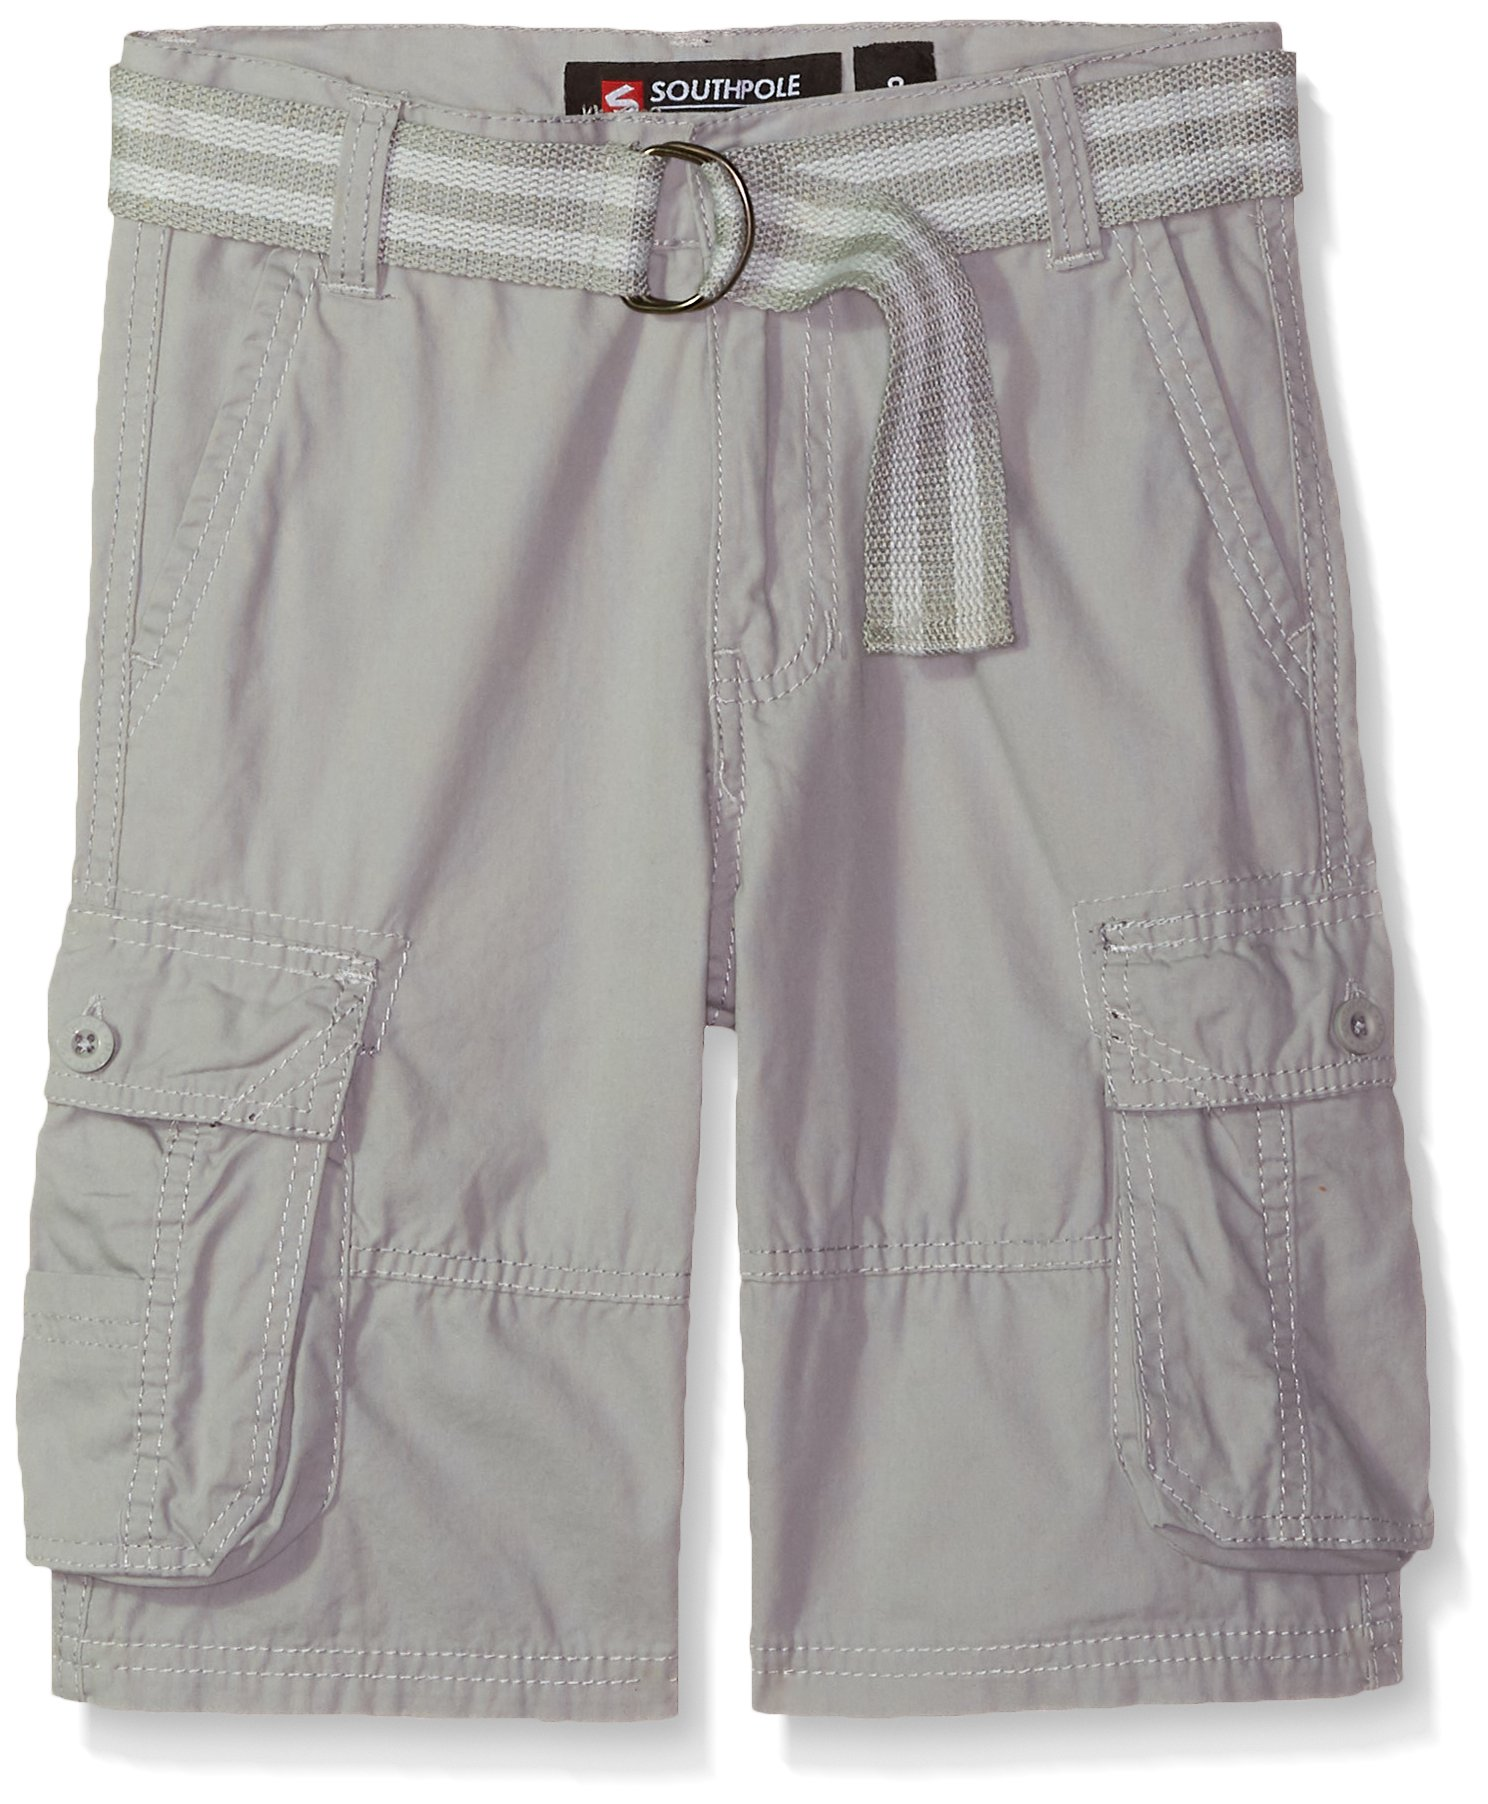 Southpole Big Boys' Belted Mini Canvas Cargo Shorts In Various Colors, Light Grey, 14